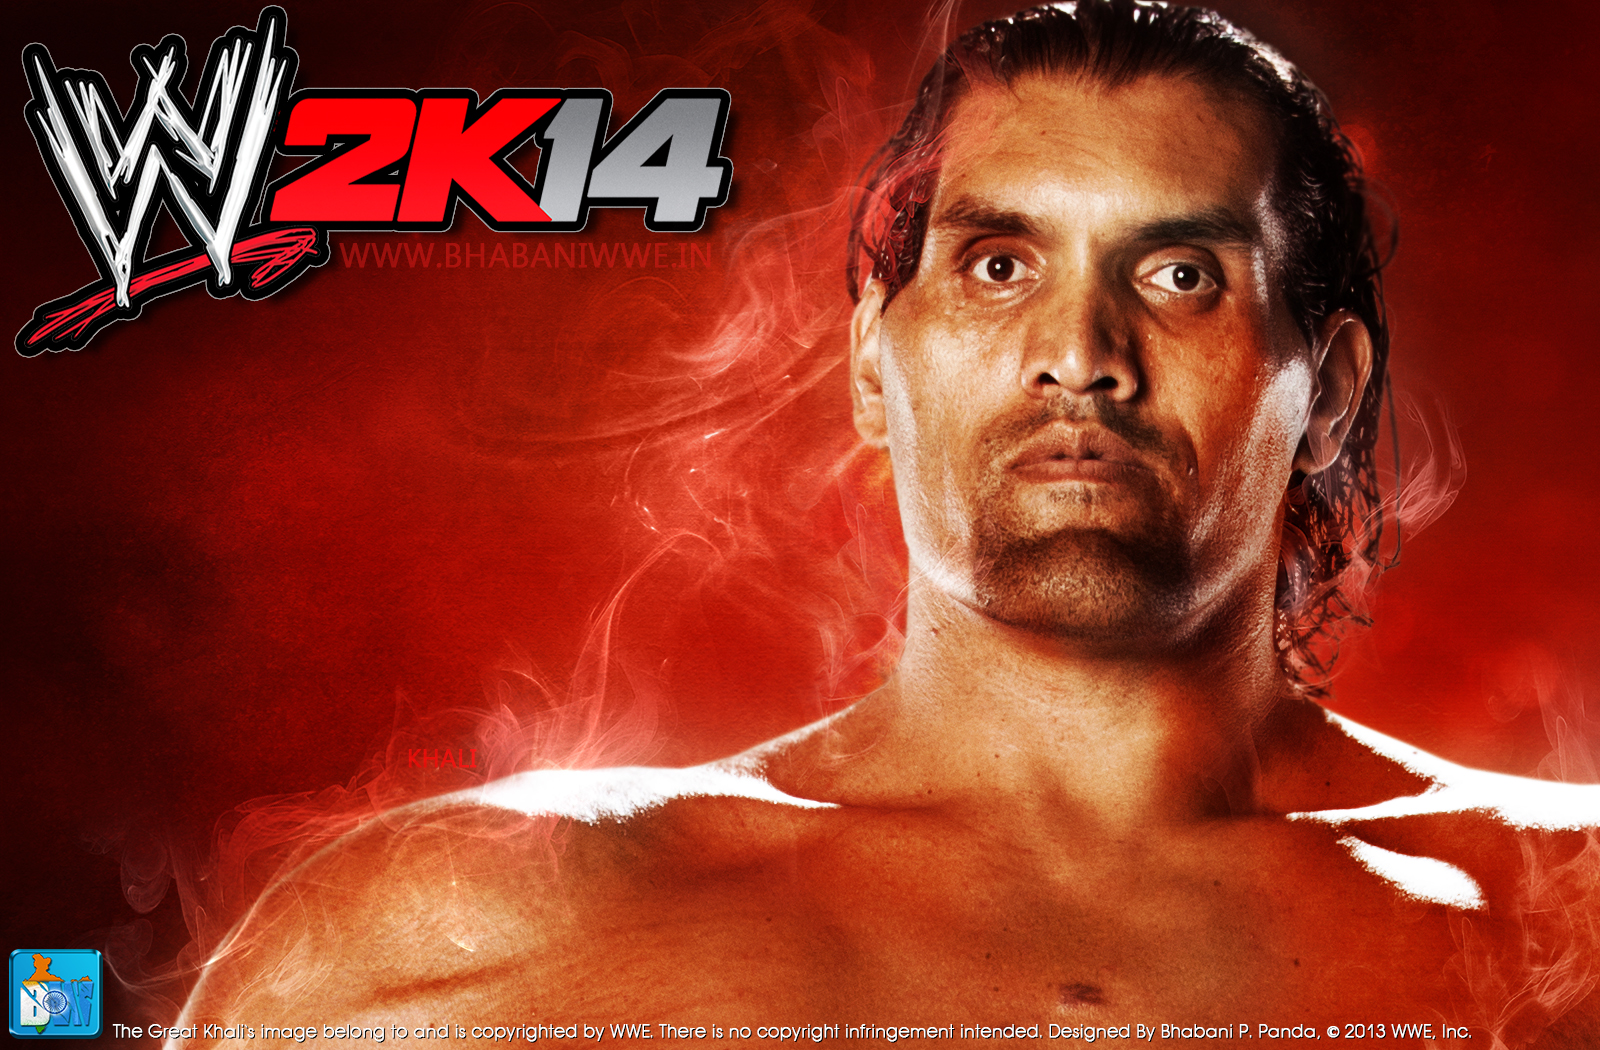 ... HQ Wallpaper Download, wwe2k14 official wallpaper, 2k14 wwe wallpaper